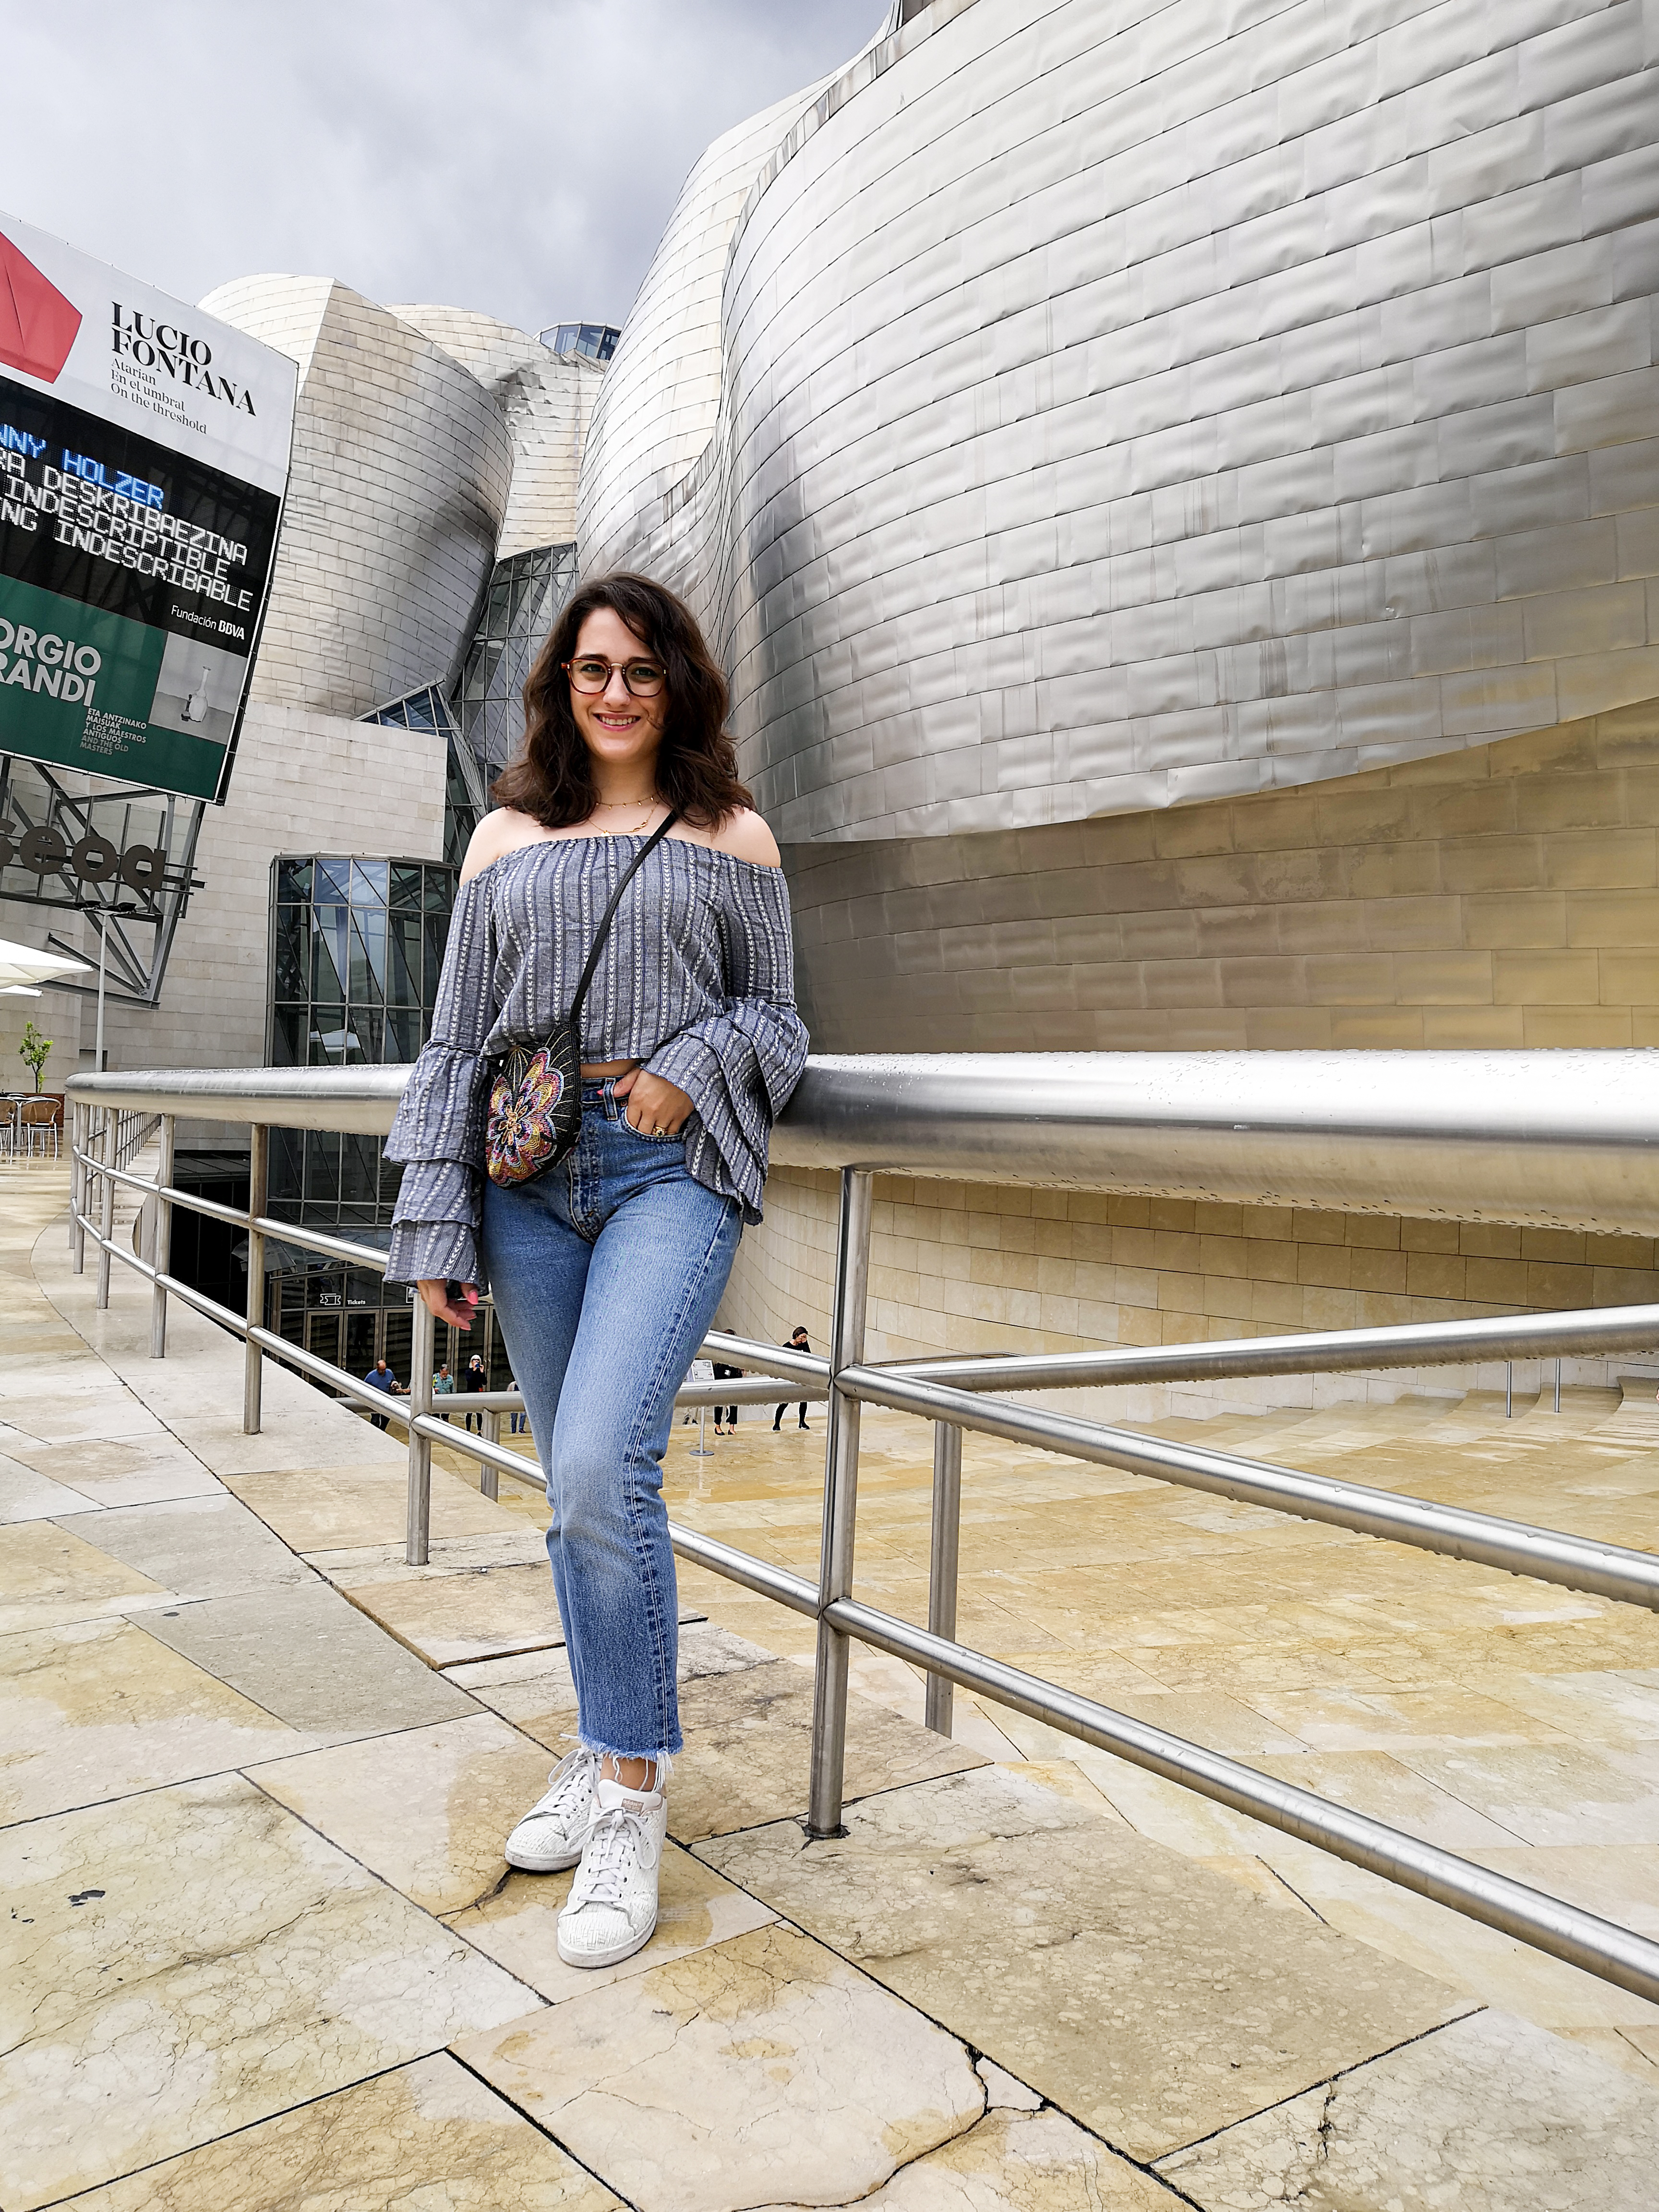 Katie is outside the Guggenheim Bilbao. She stands in front of the main entrance. It's a drizzly day and the sky is a white / grey between showers. She wears a blue-grey off the shoulder crop top with tiered flute sleeves, high waisted jeans, white sneakers and a multicoloured beaded crossbody bag.